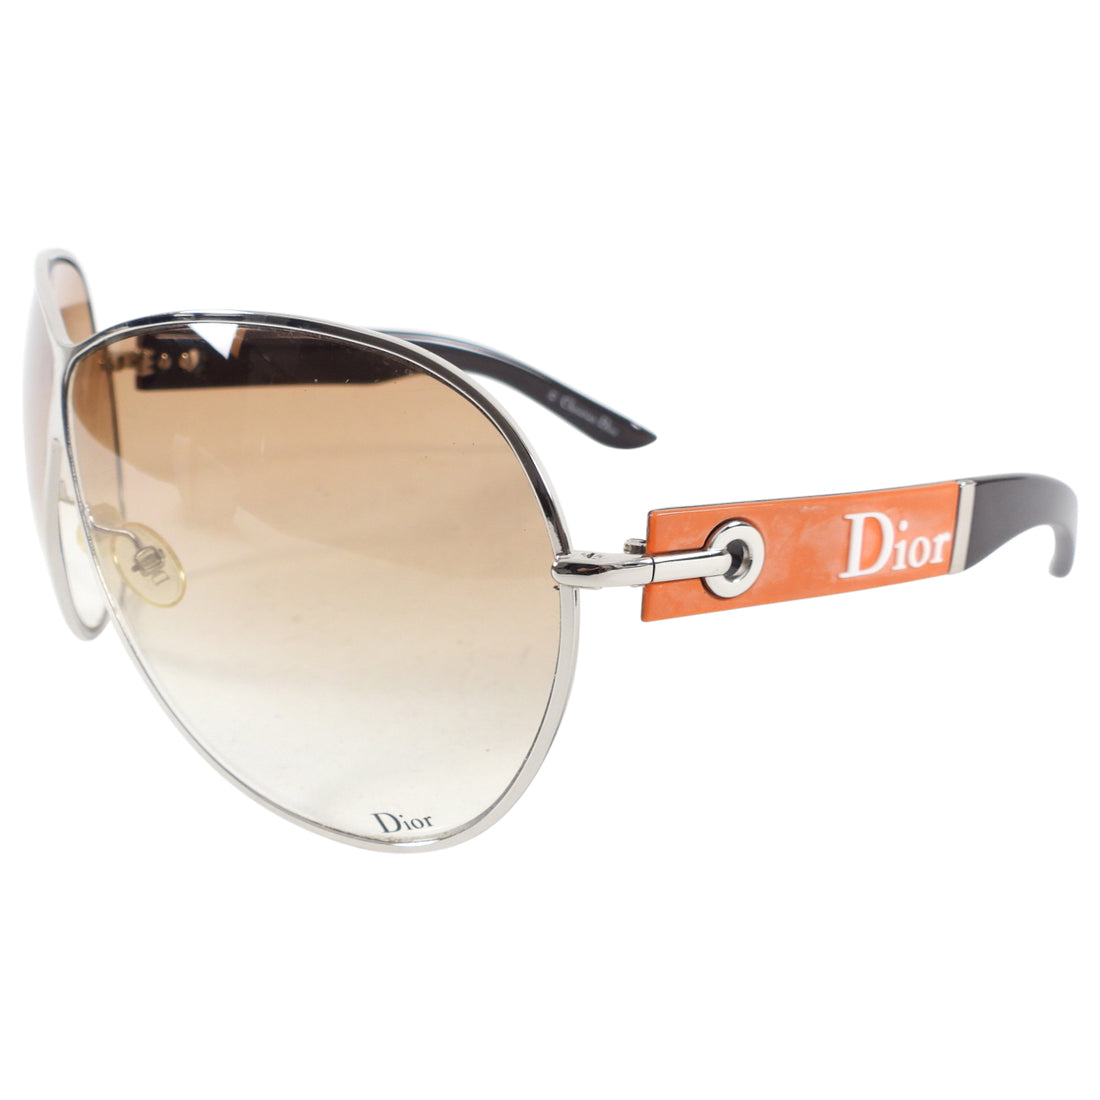 Dior Vintage Early 2000's Flight Aviator Wrap Sunglasses